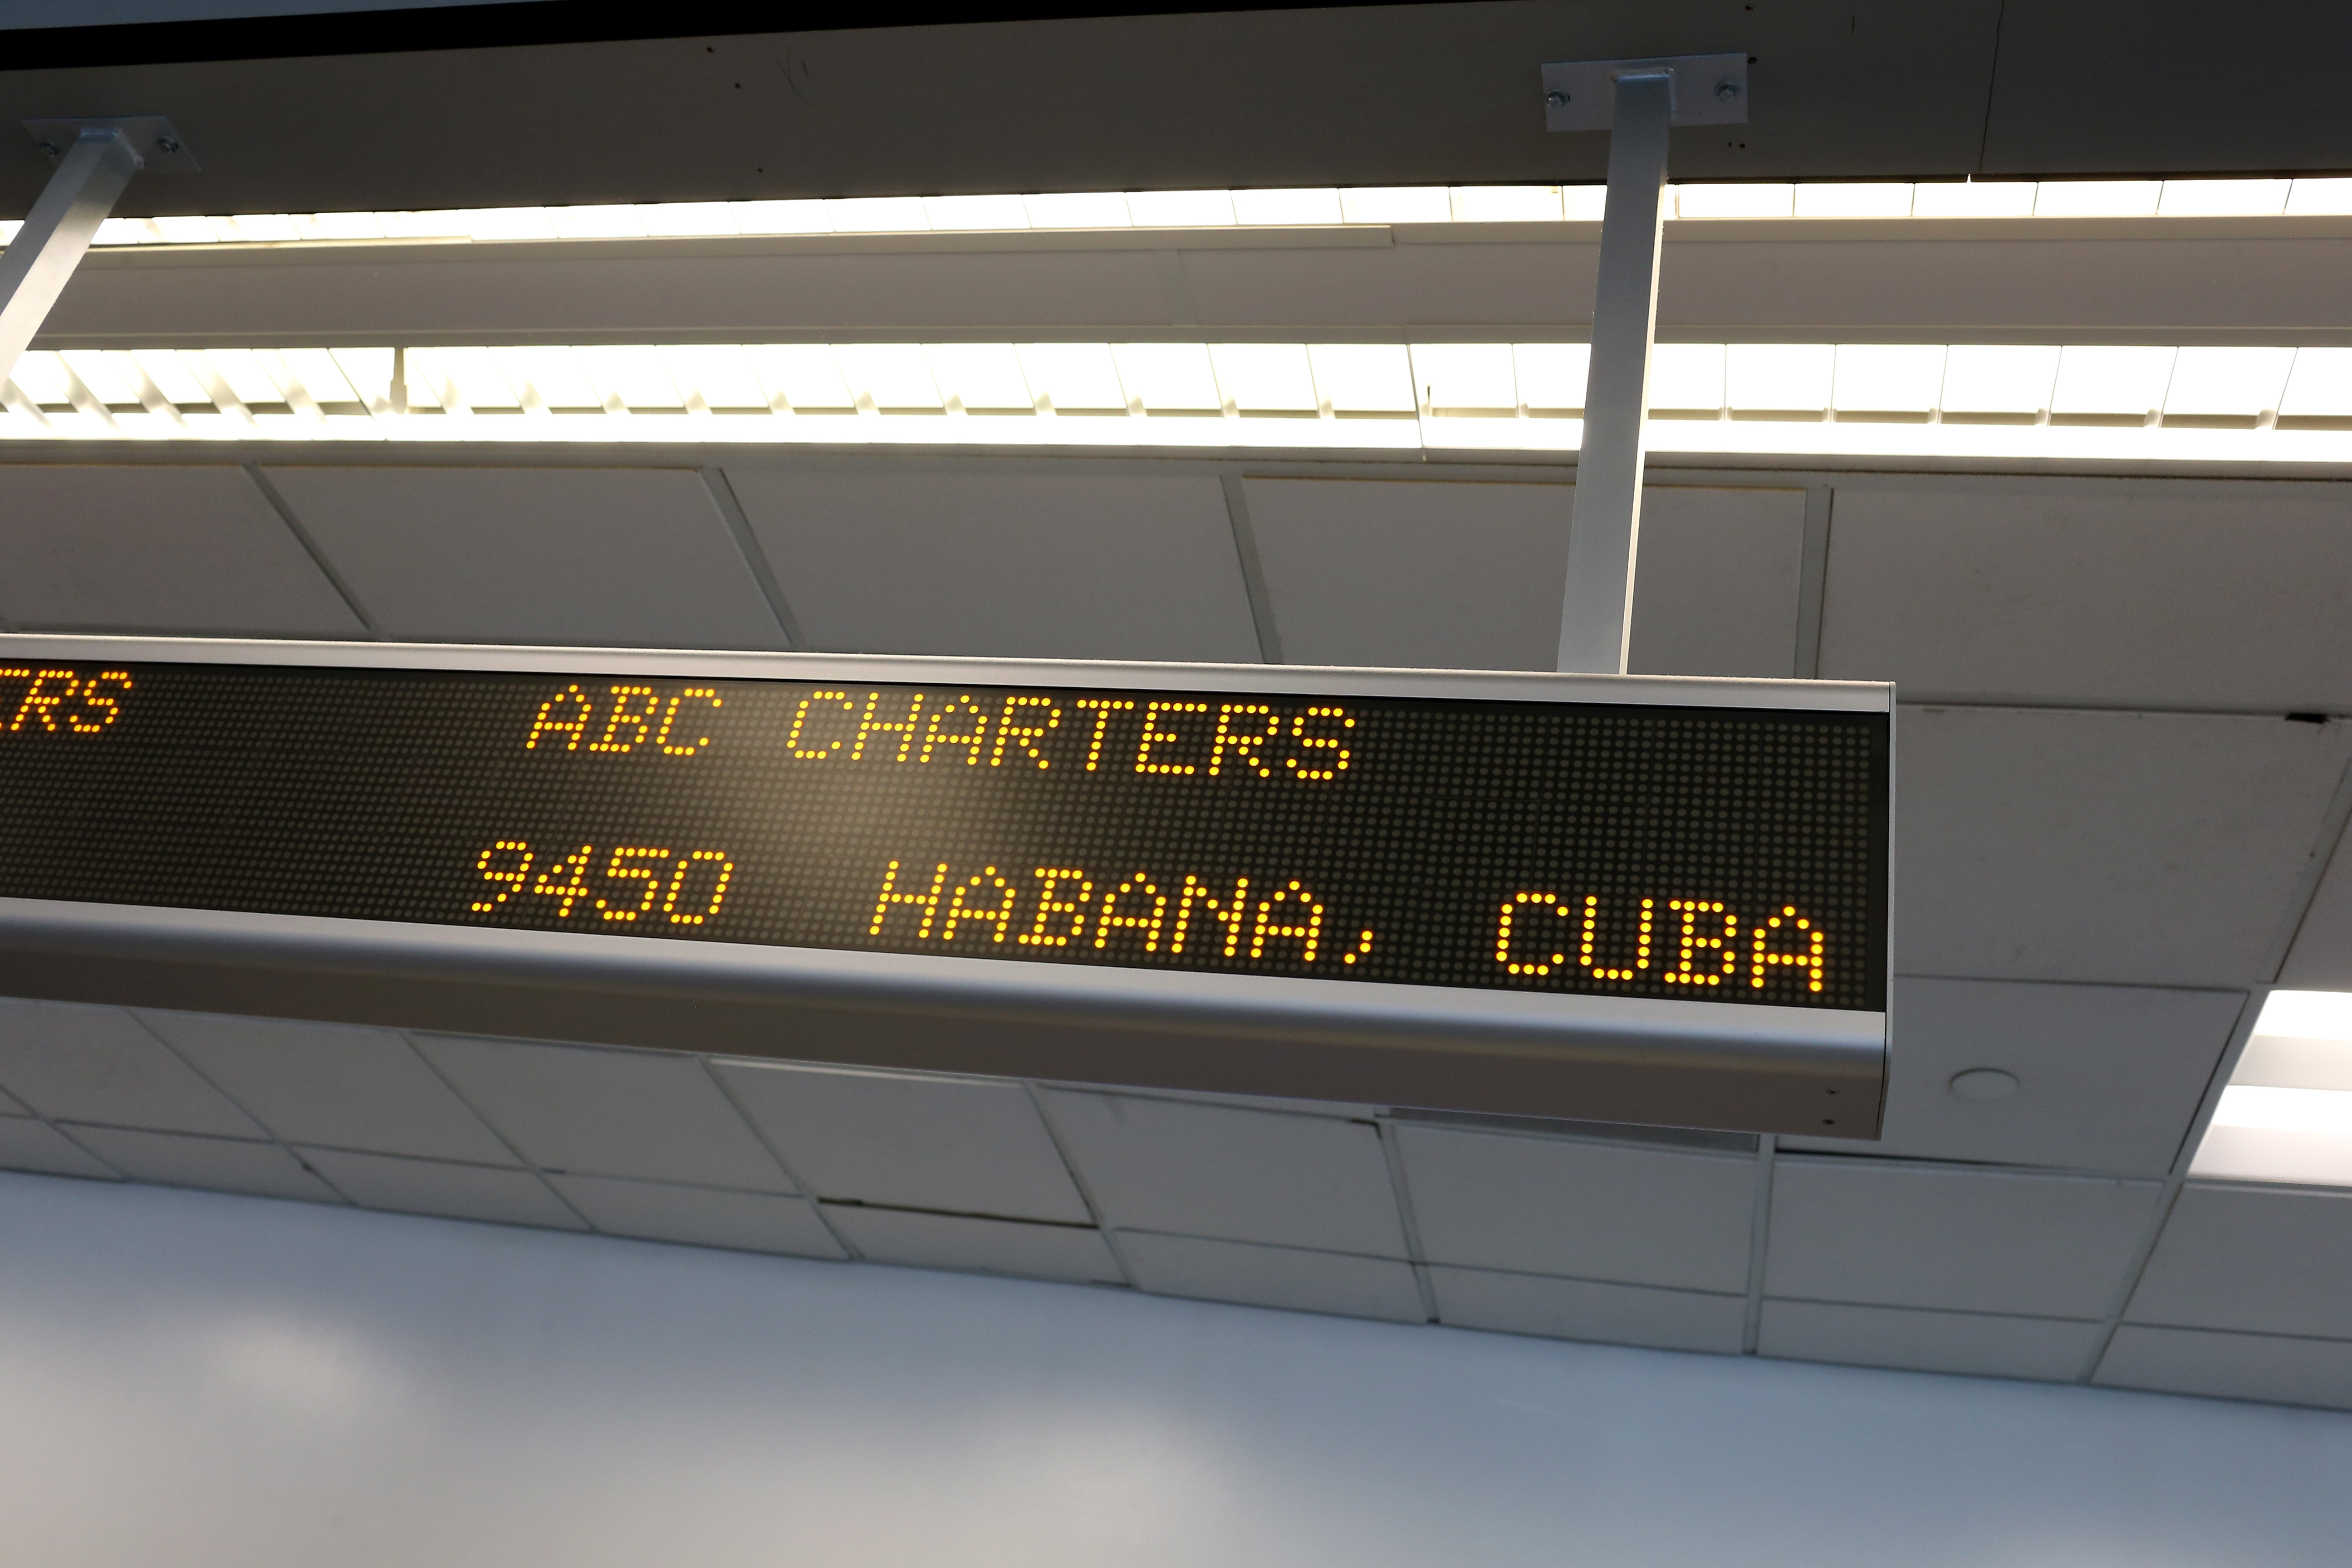 A sign indicates the ABC Charters American Airlines flight to Havana, Cuba at Miami International Airport on December 19, 2014 in Miami, Florida.